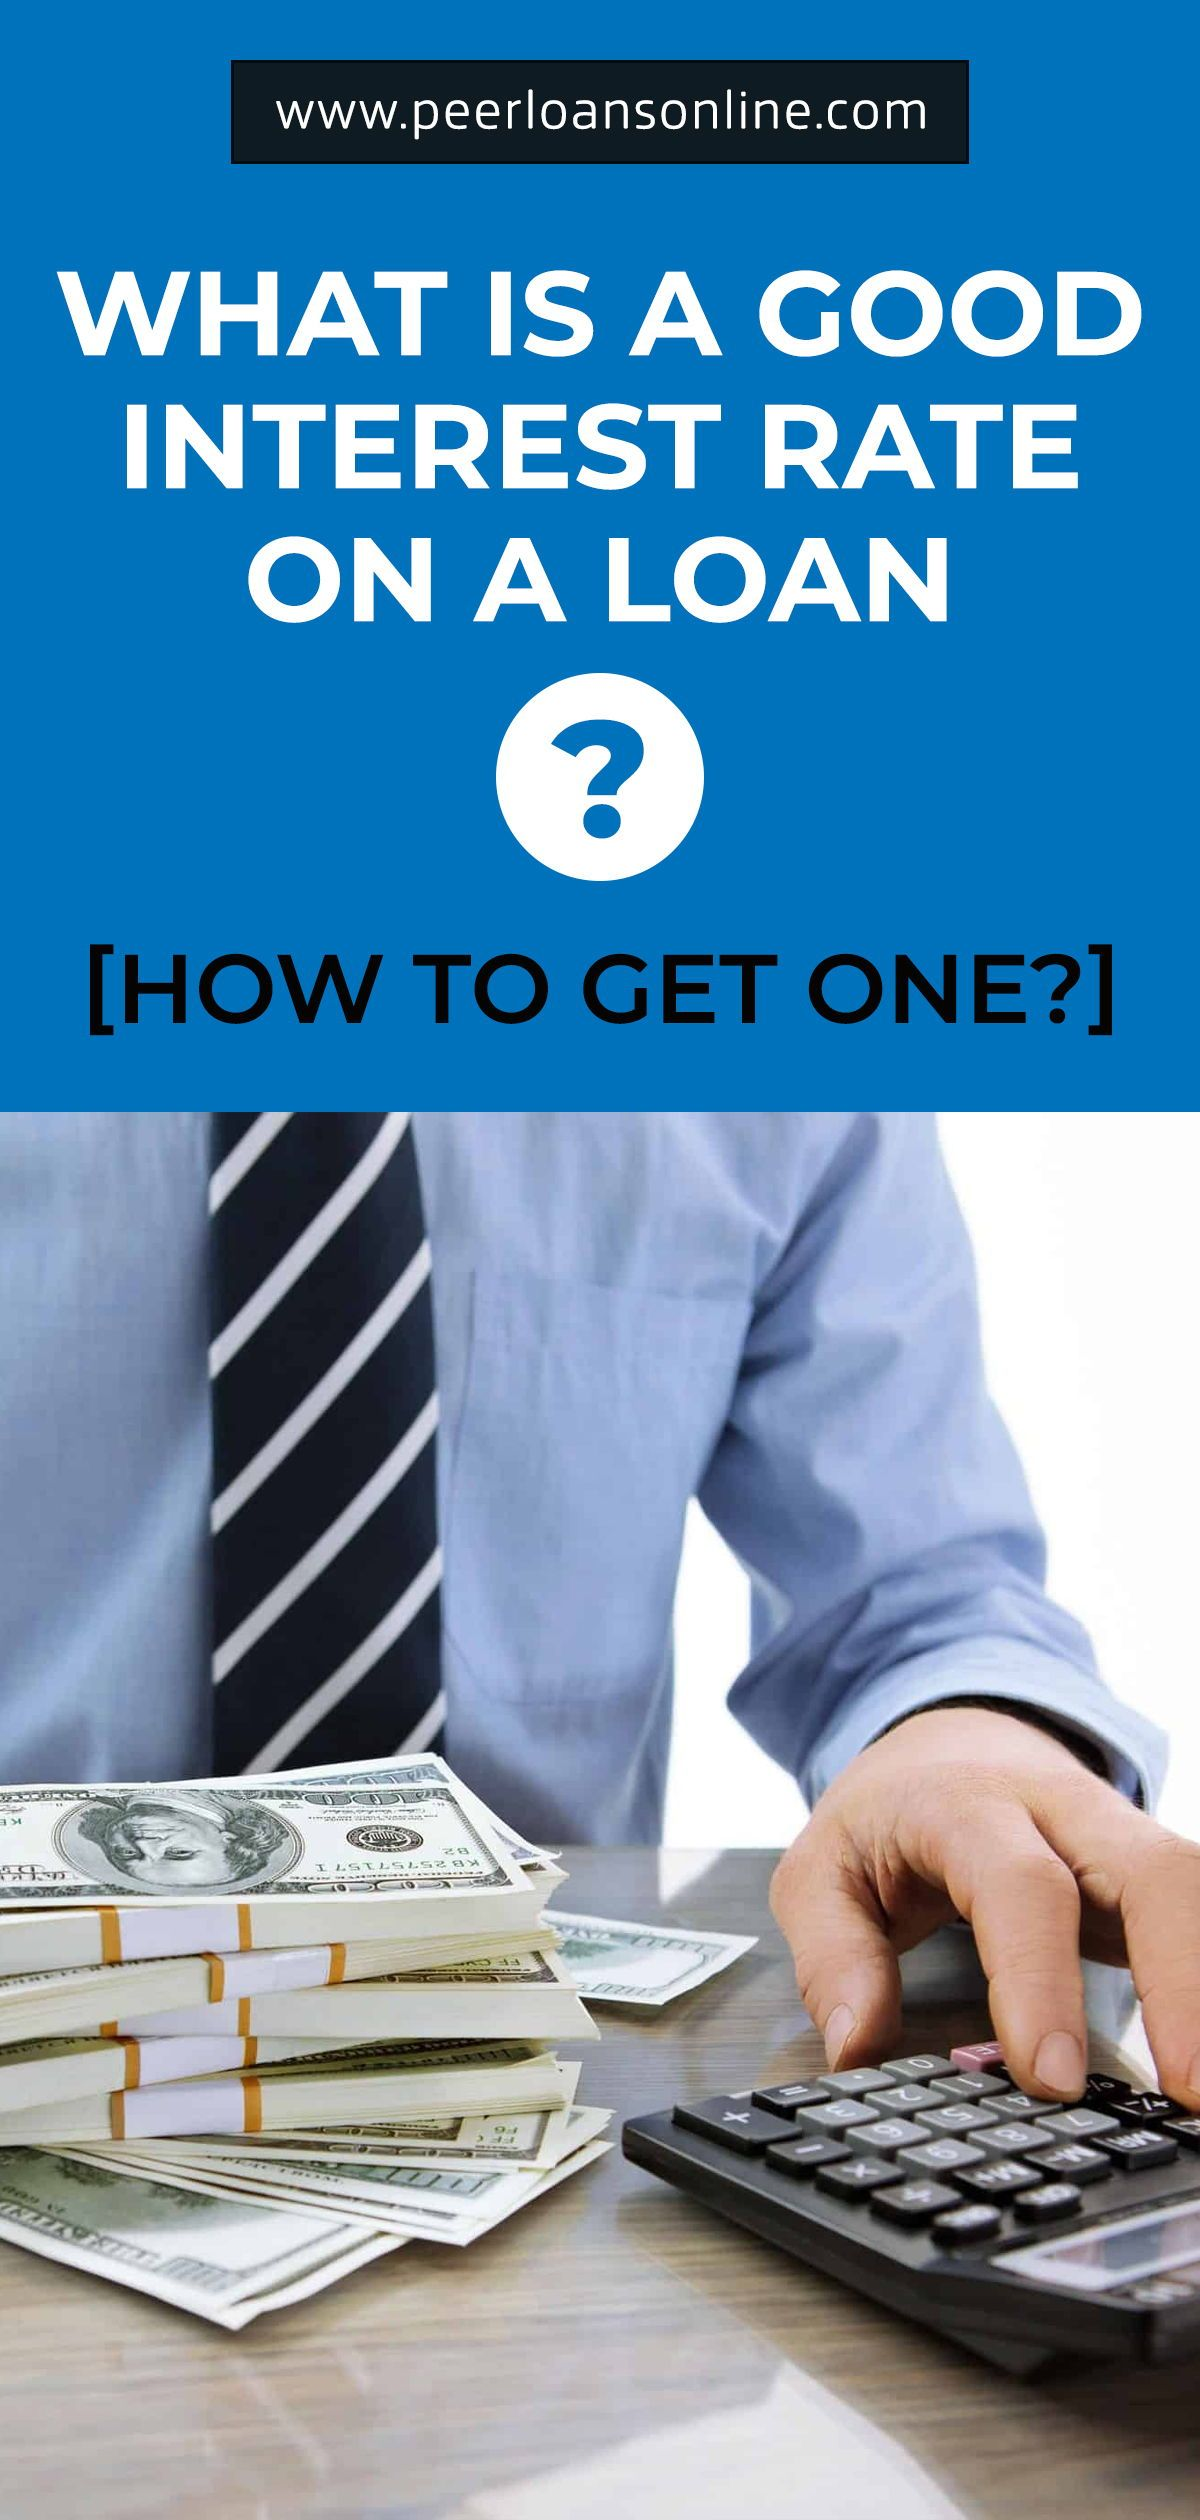 Pin On Win At Money Personal Finance And Entrepreneurship